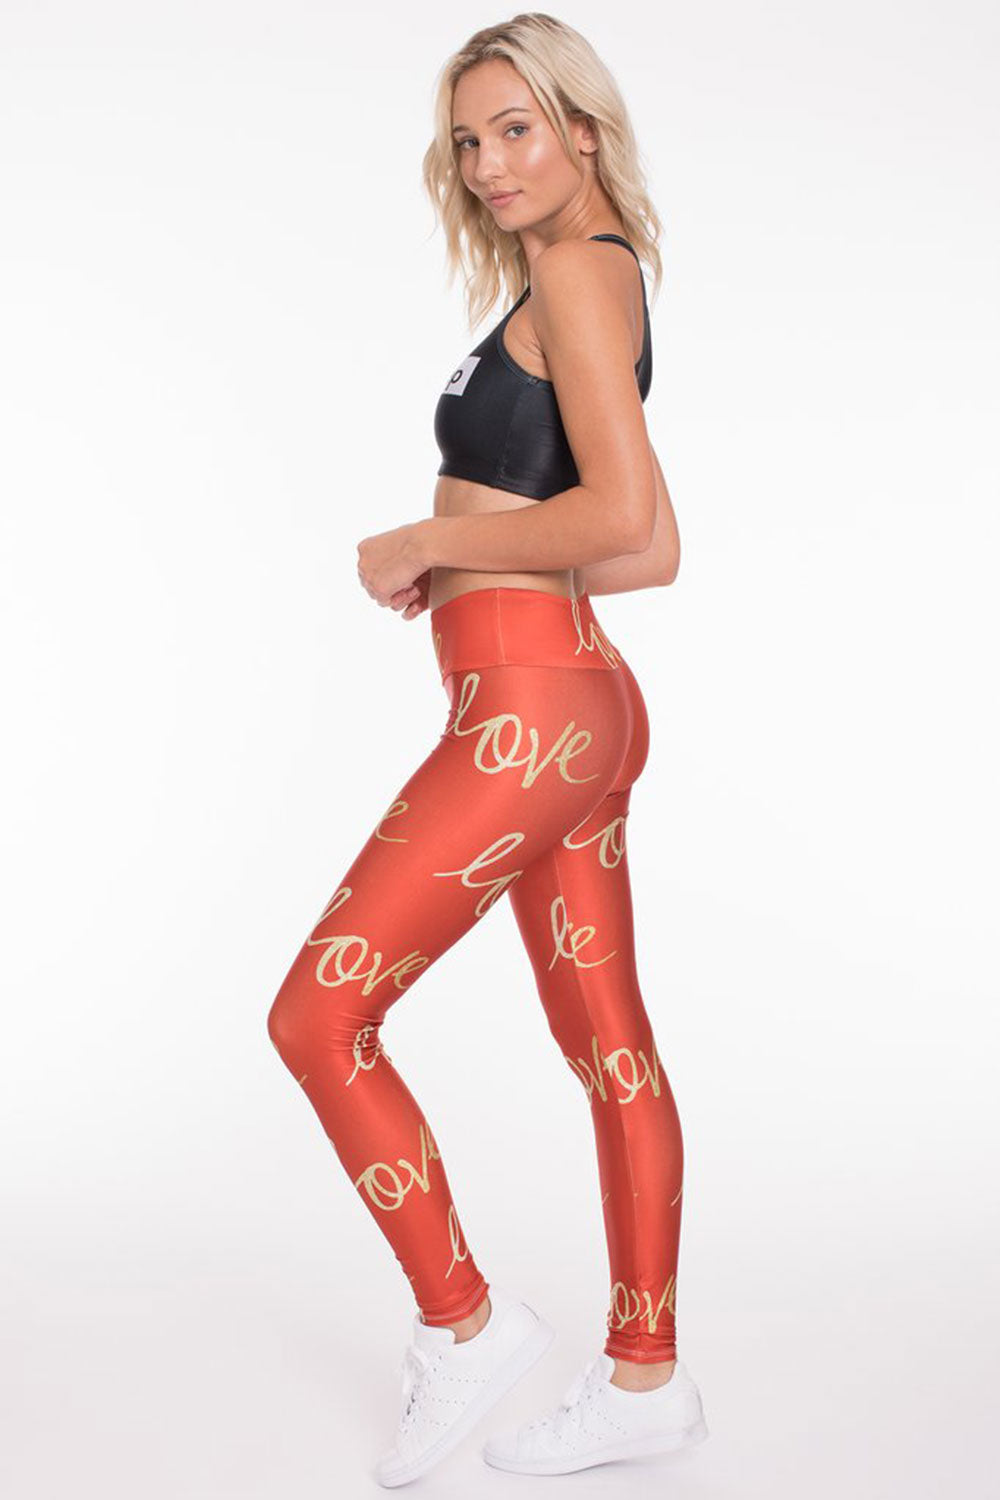 Goldsheep Holiday Love Long Legging - Sculptique